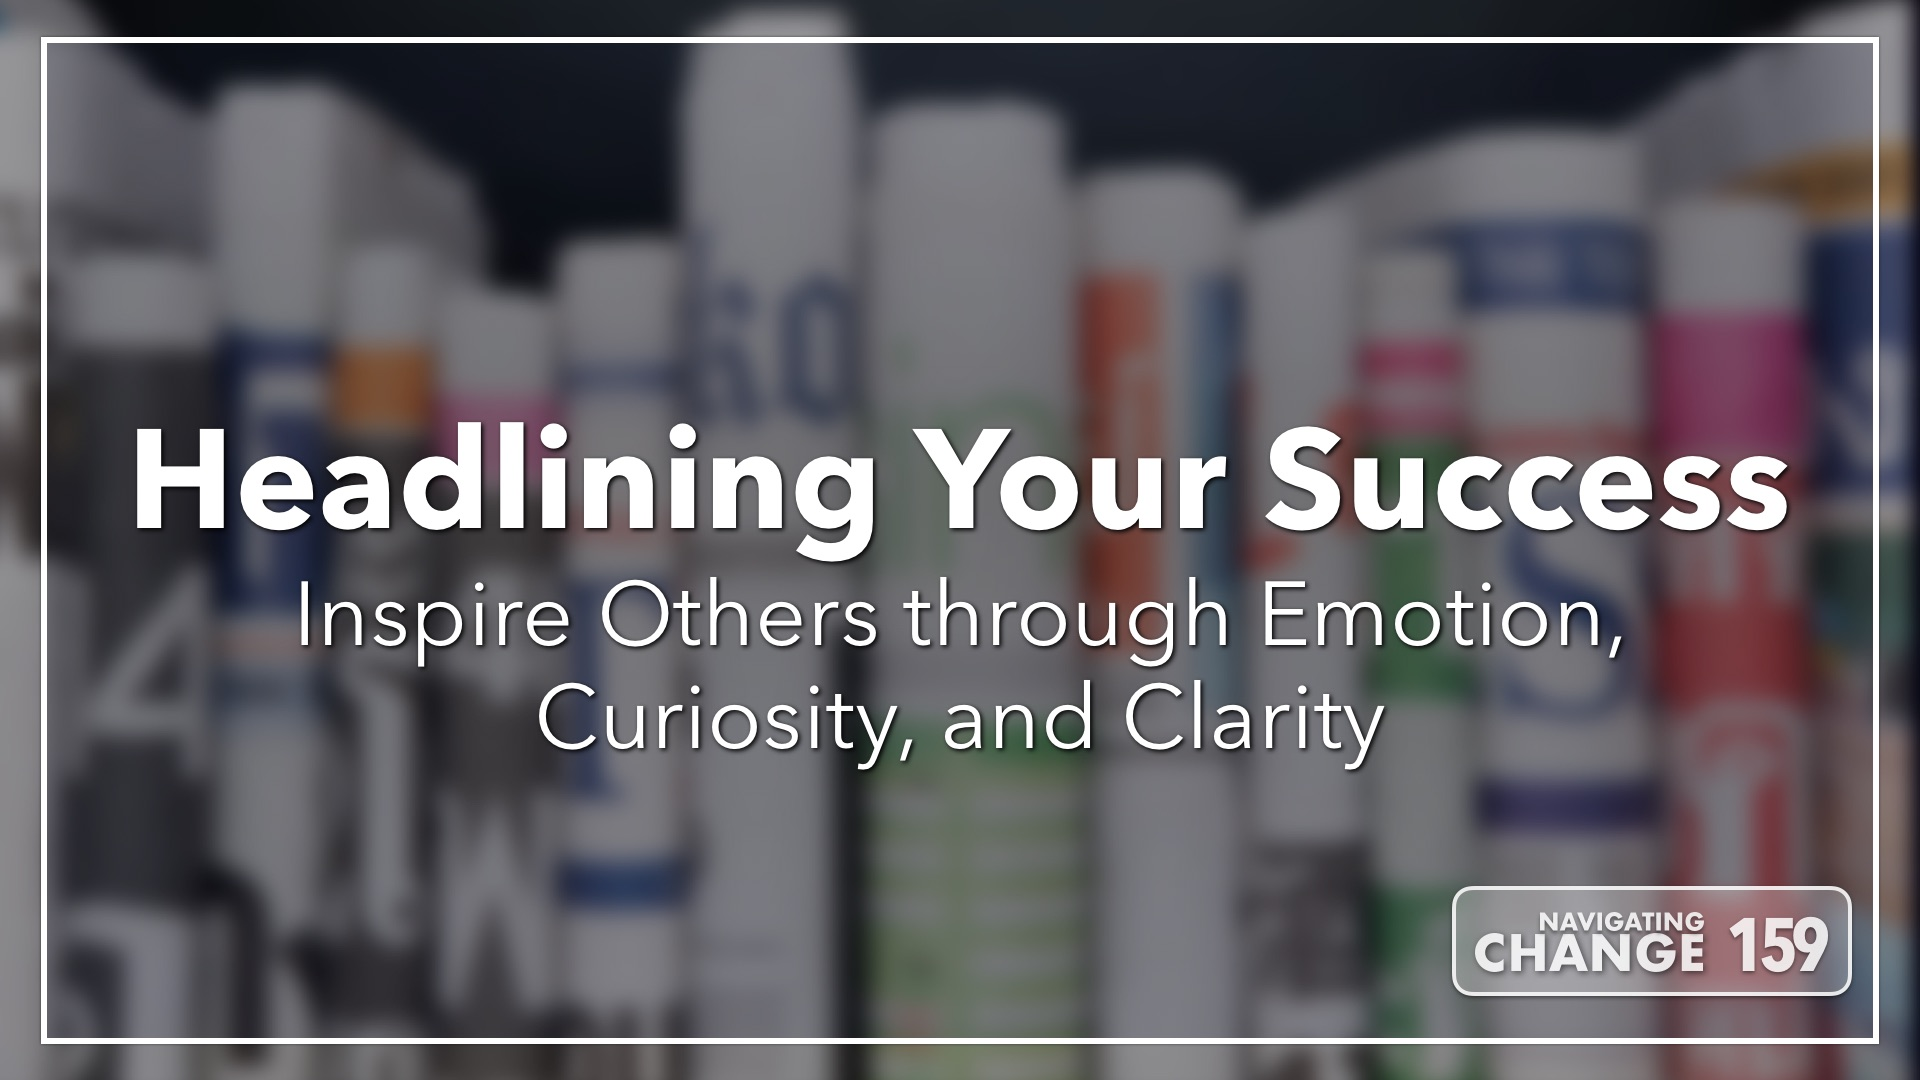 Listen to Headlining Your Success on Navigating Change The Education Podcast